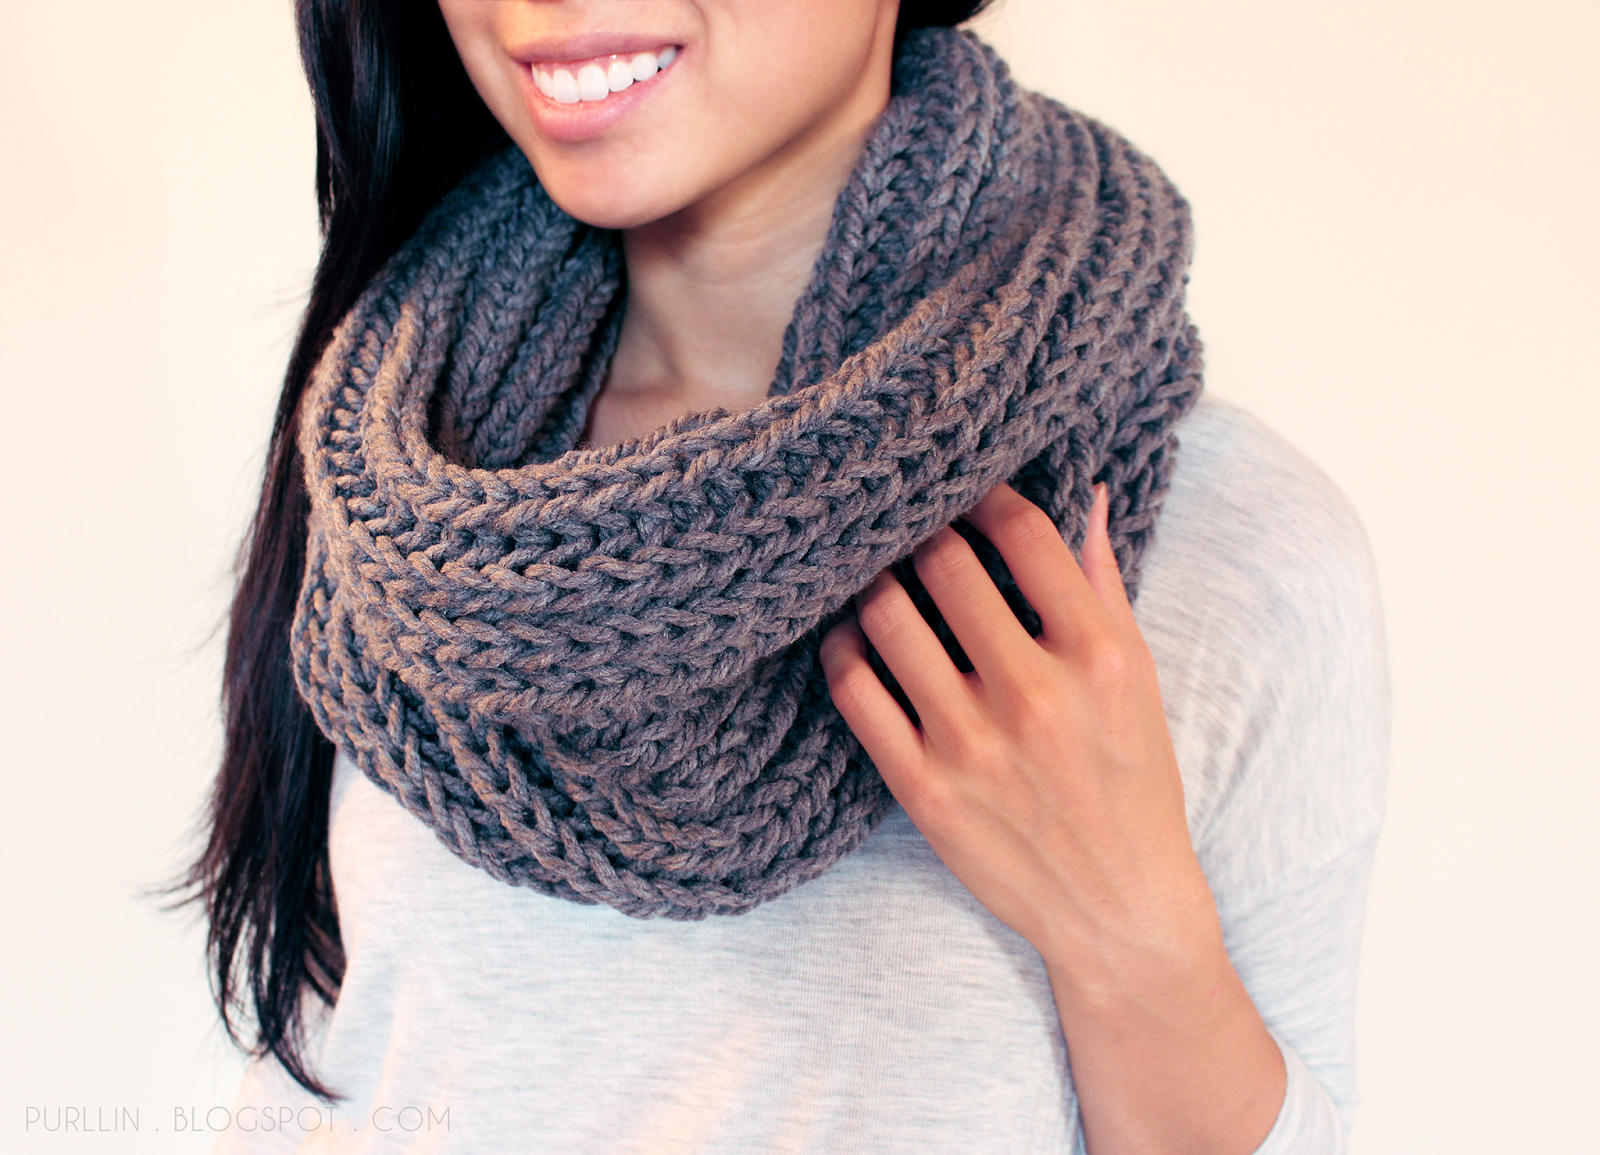 Knitting Pattern For Chunky Infinity Scarf : Purllin